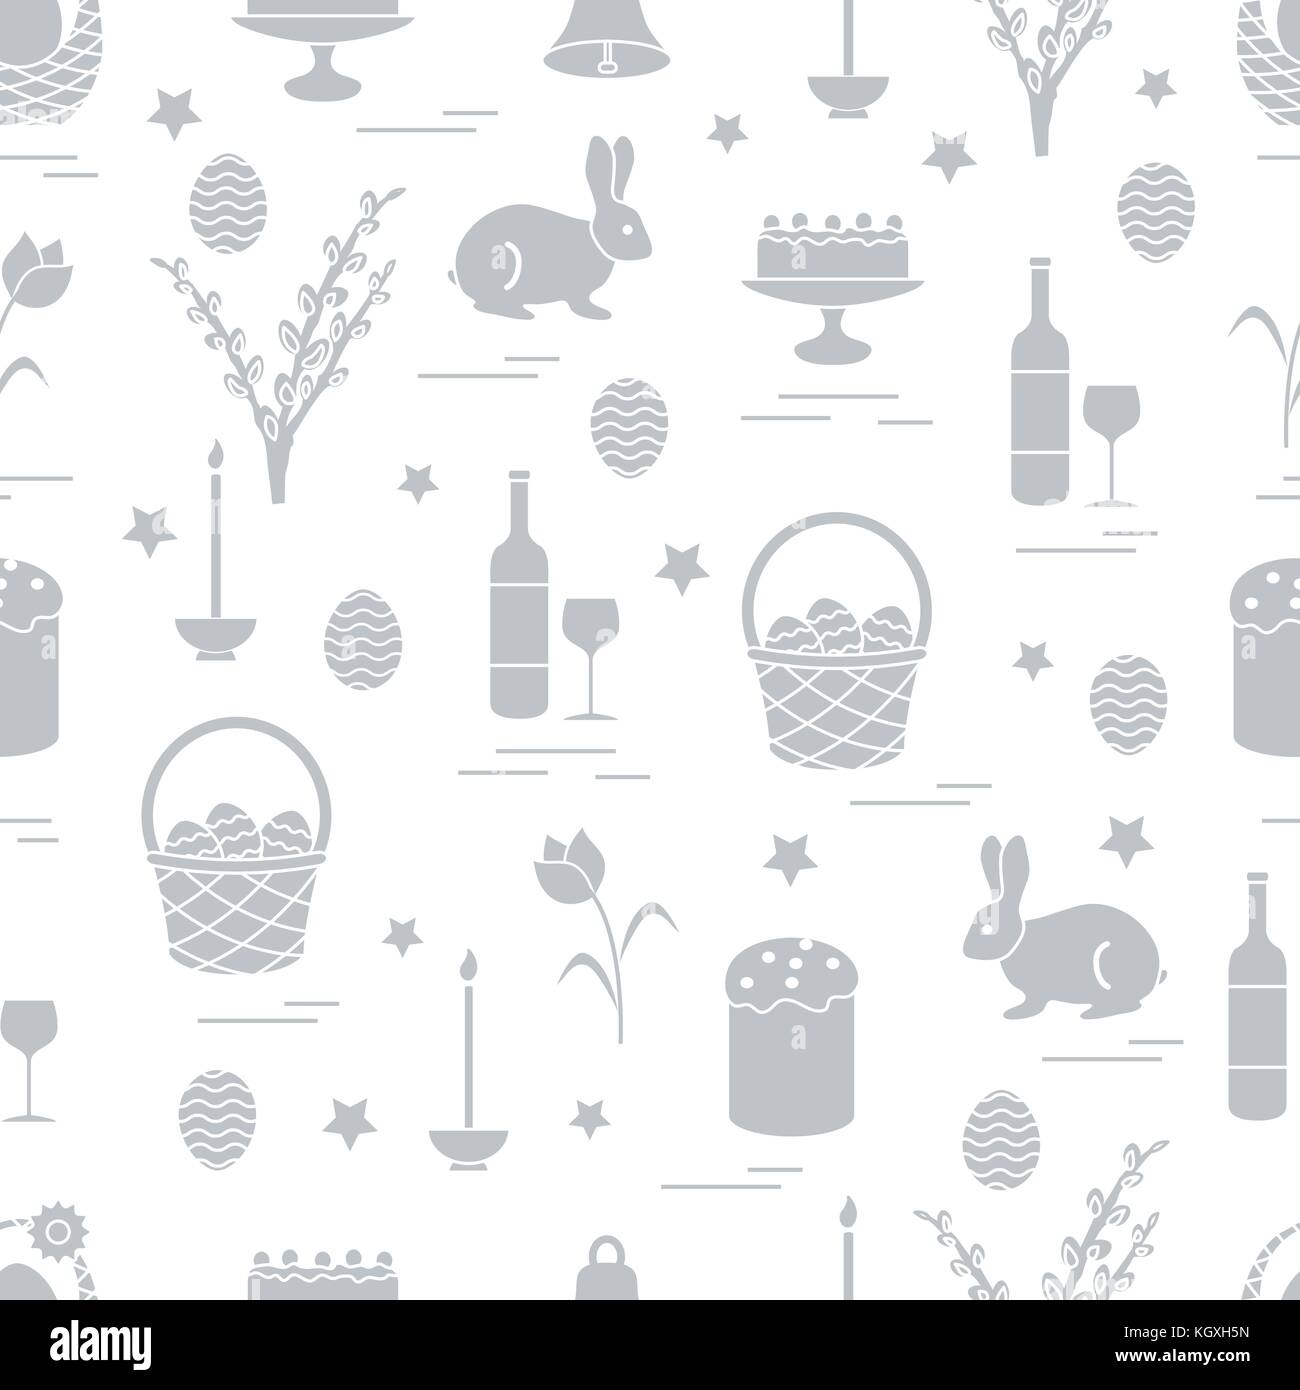 English british concept symbol stock photos english british cute seamless pattern with different symbols for easter design for banner poster or print buycottarizona